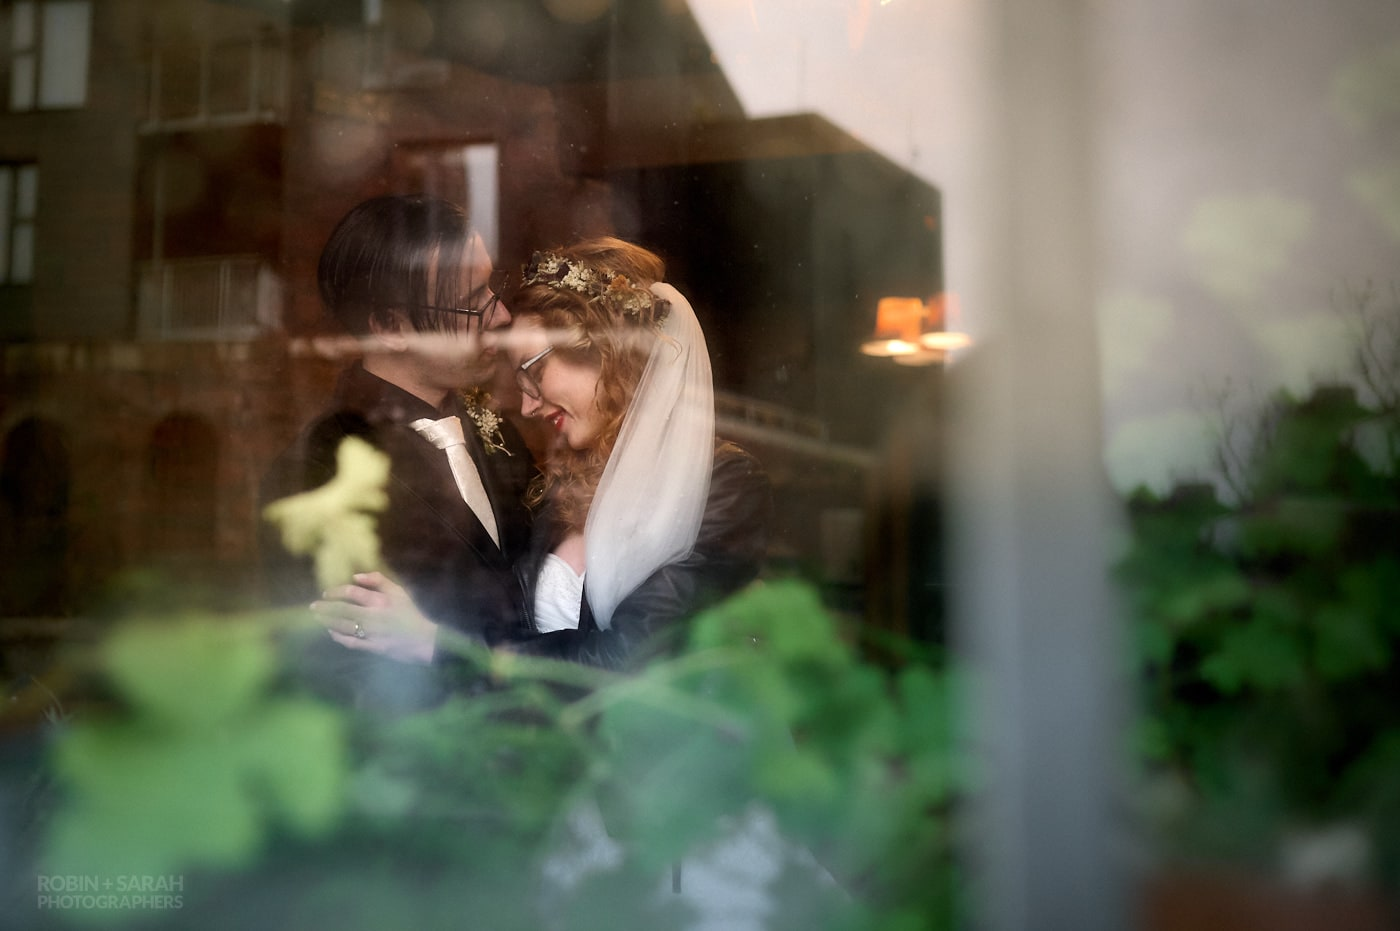 View through window of newly married couple enjoying quiet moment together in side The Chimney House wedding venue